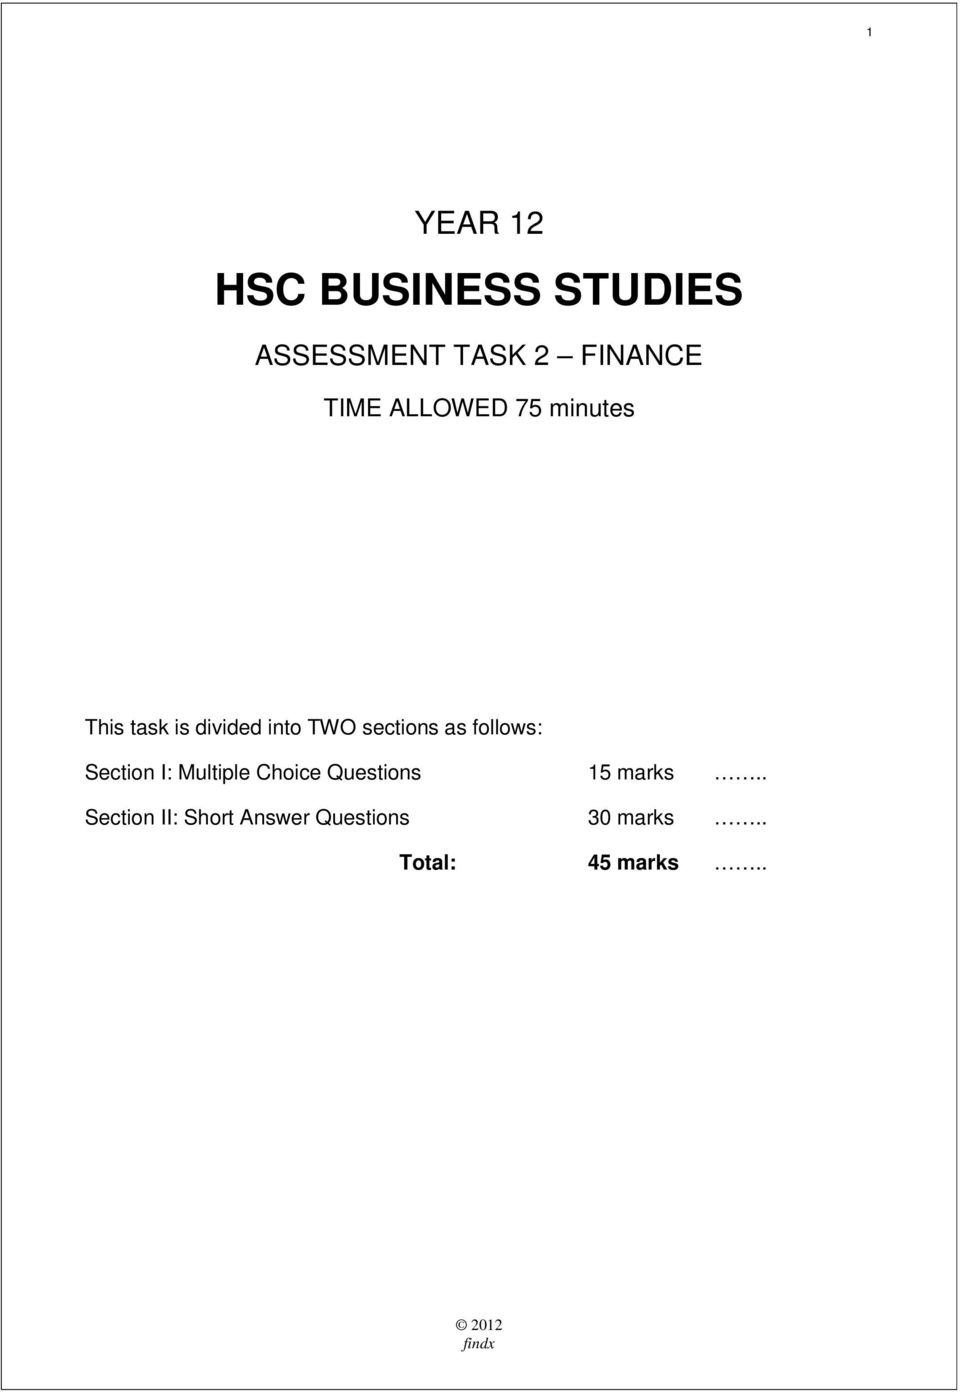 HSC BUSINESS STUDIES - PDF